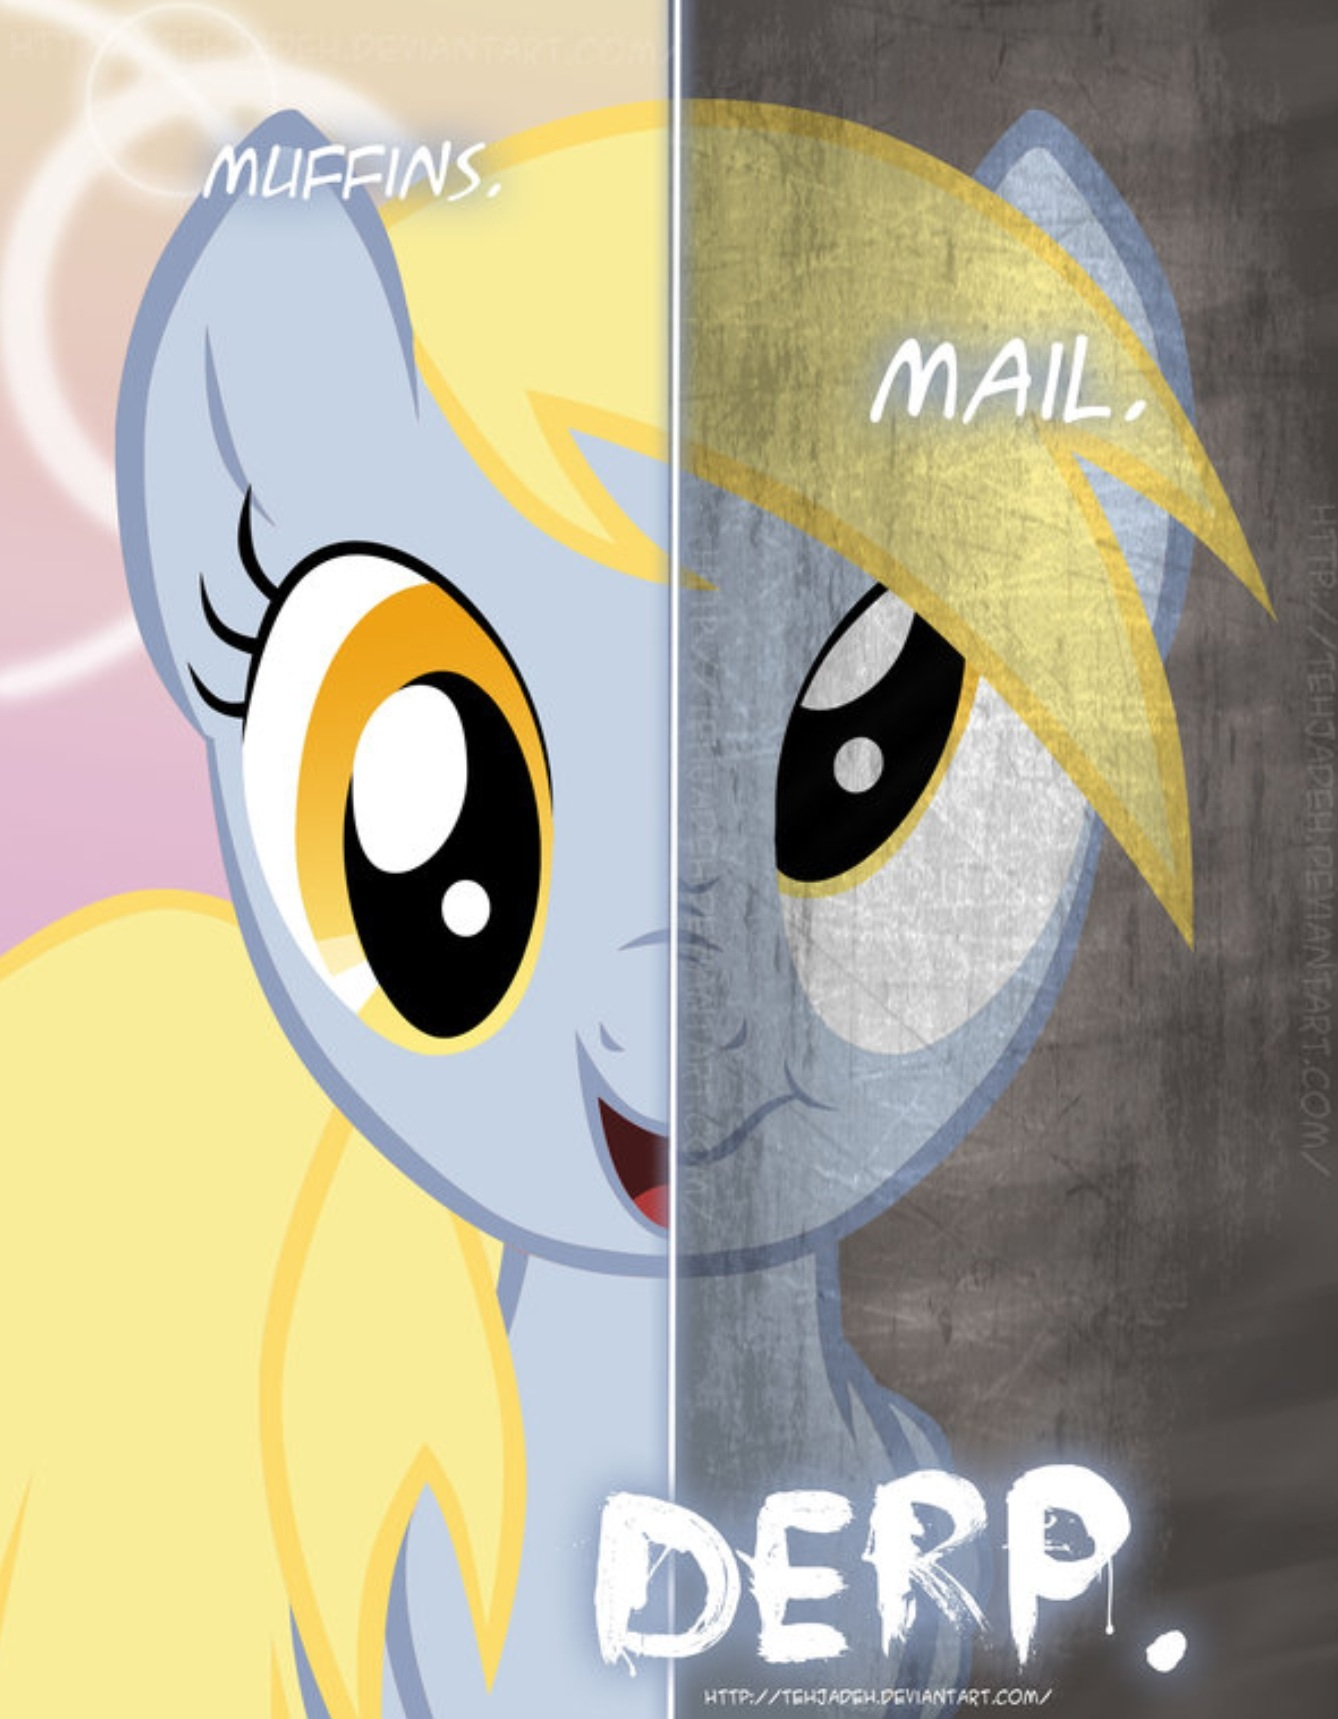 Saving Derpy Hooves Images Muffins Mail Derp HD Wallpaper And Background Photos